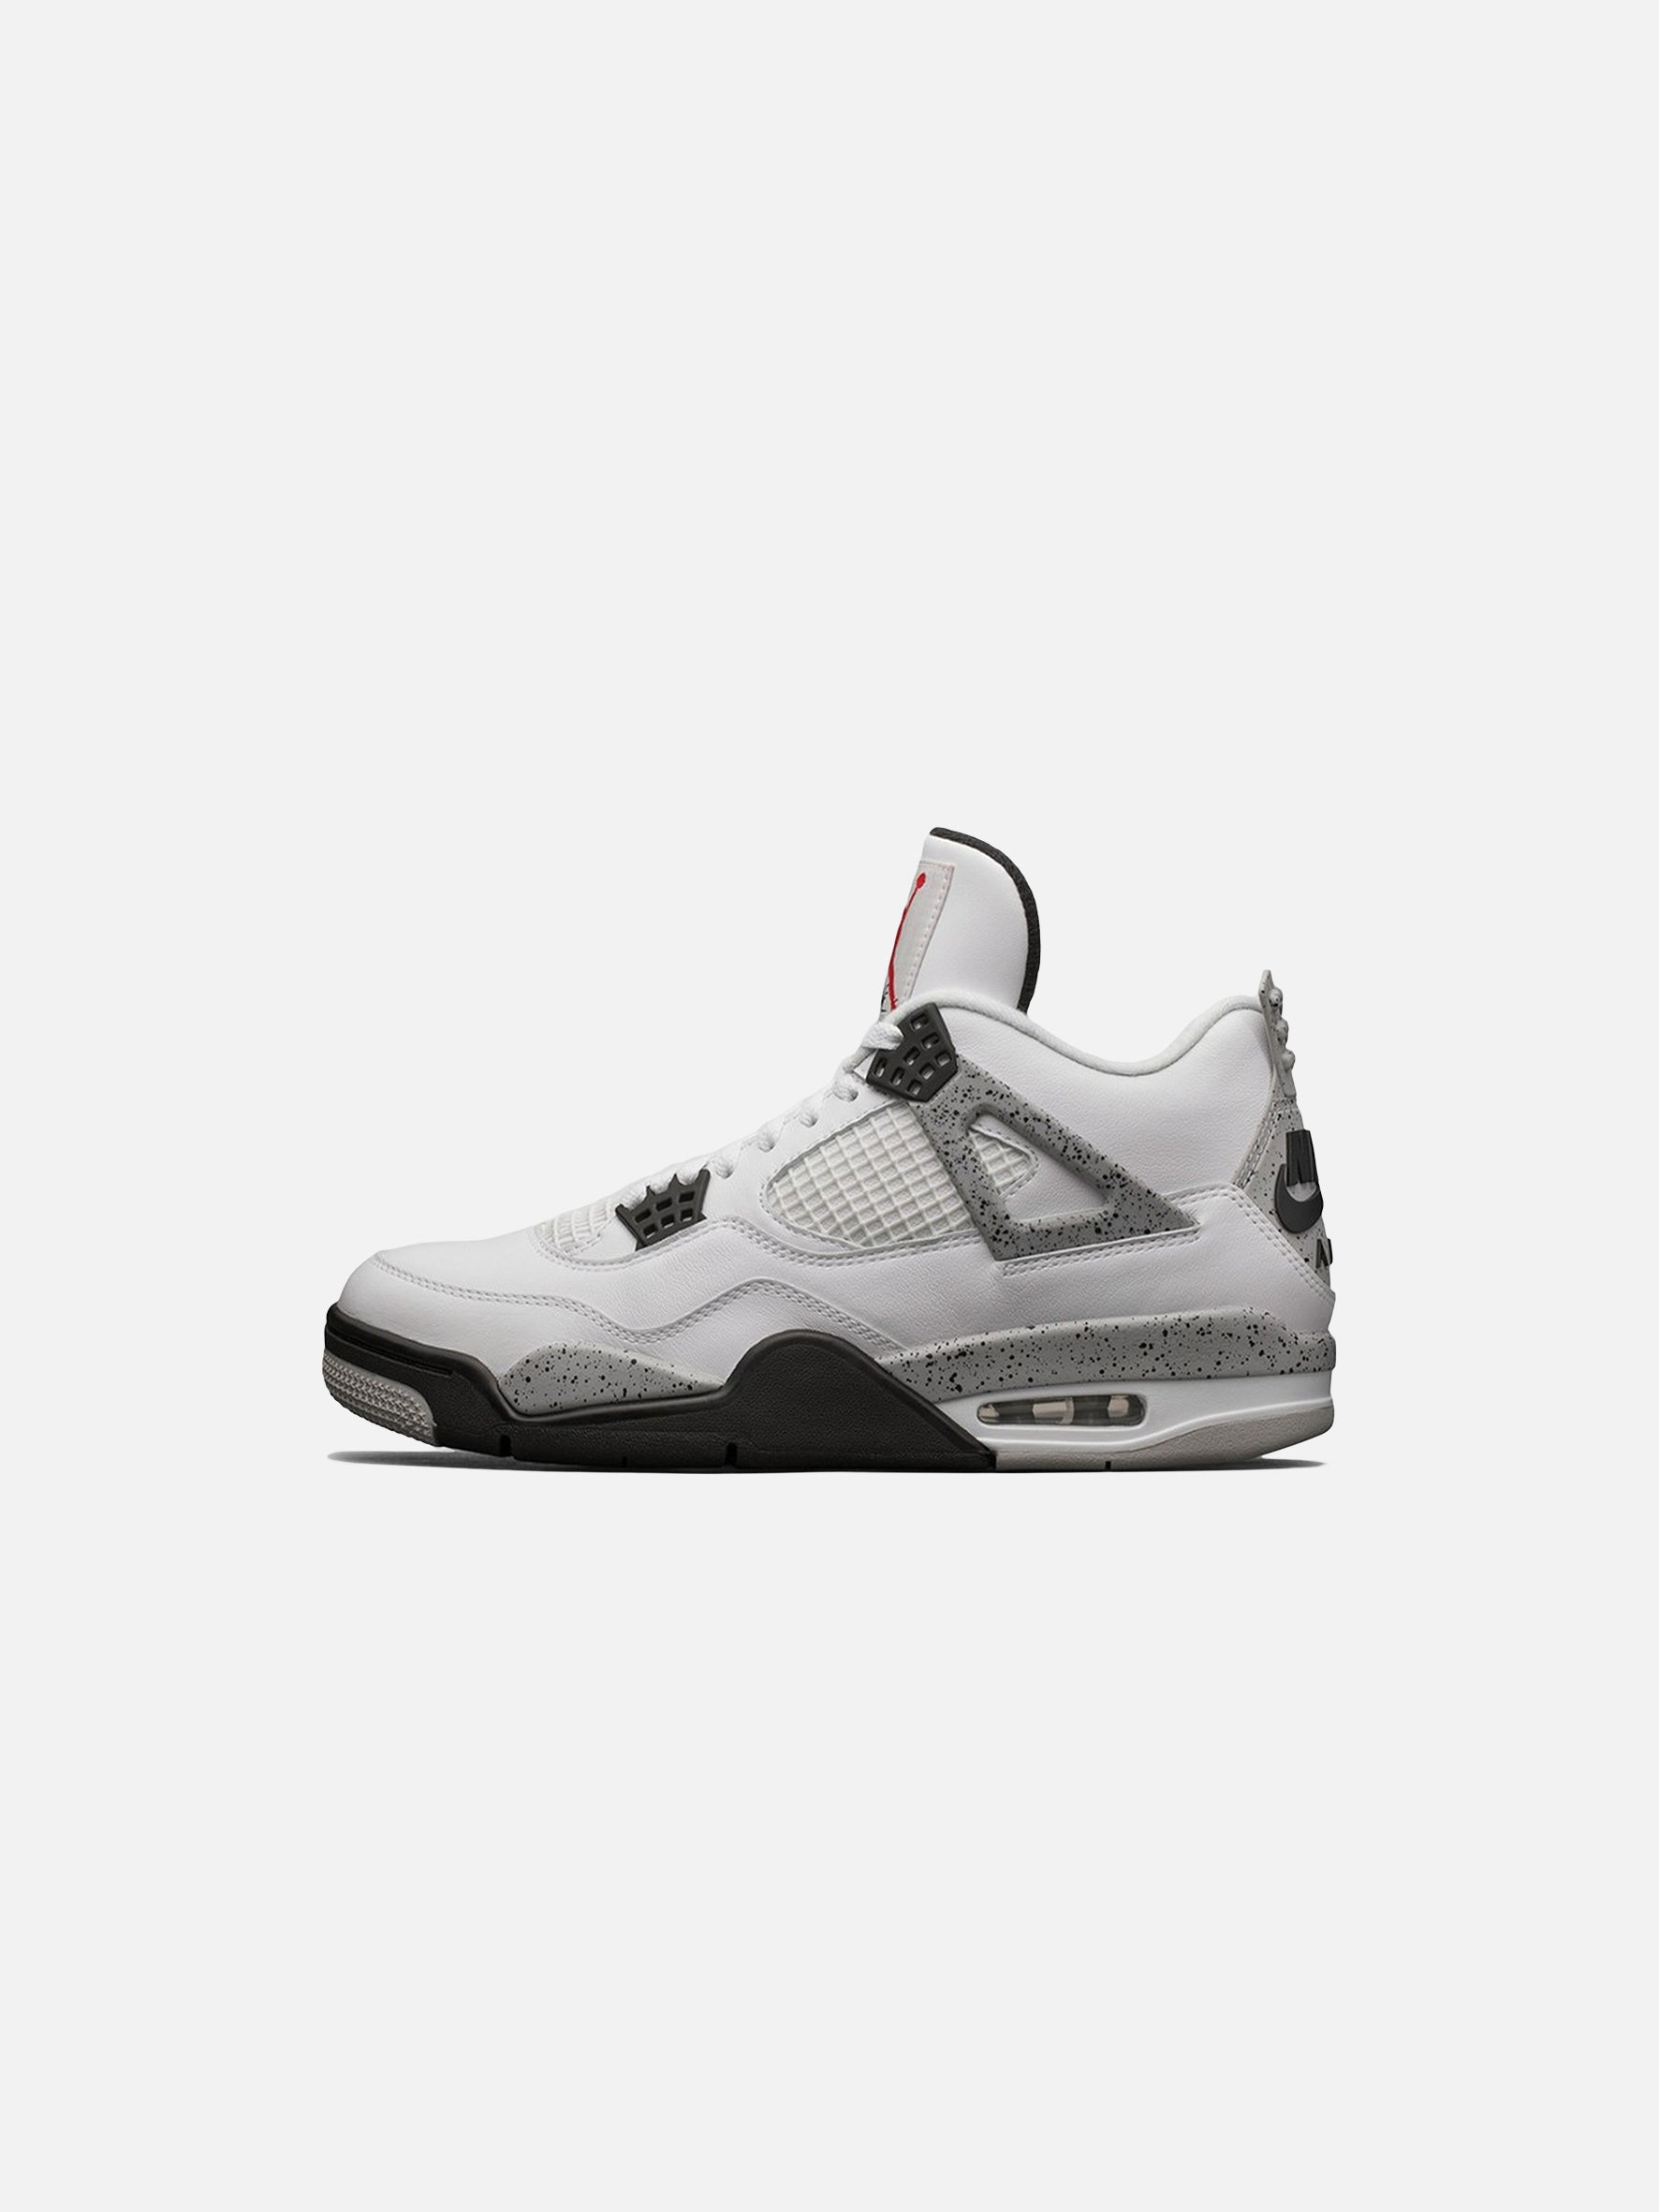 Nike Air Jordan IV White Cement